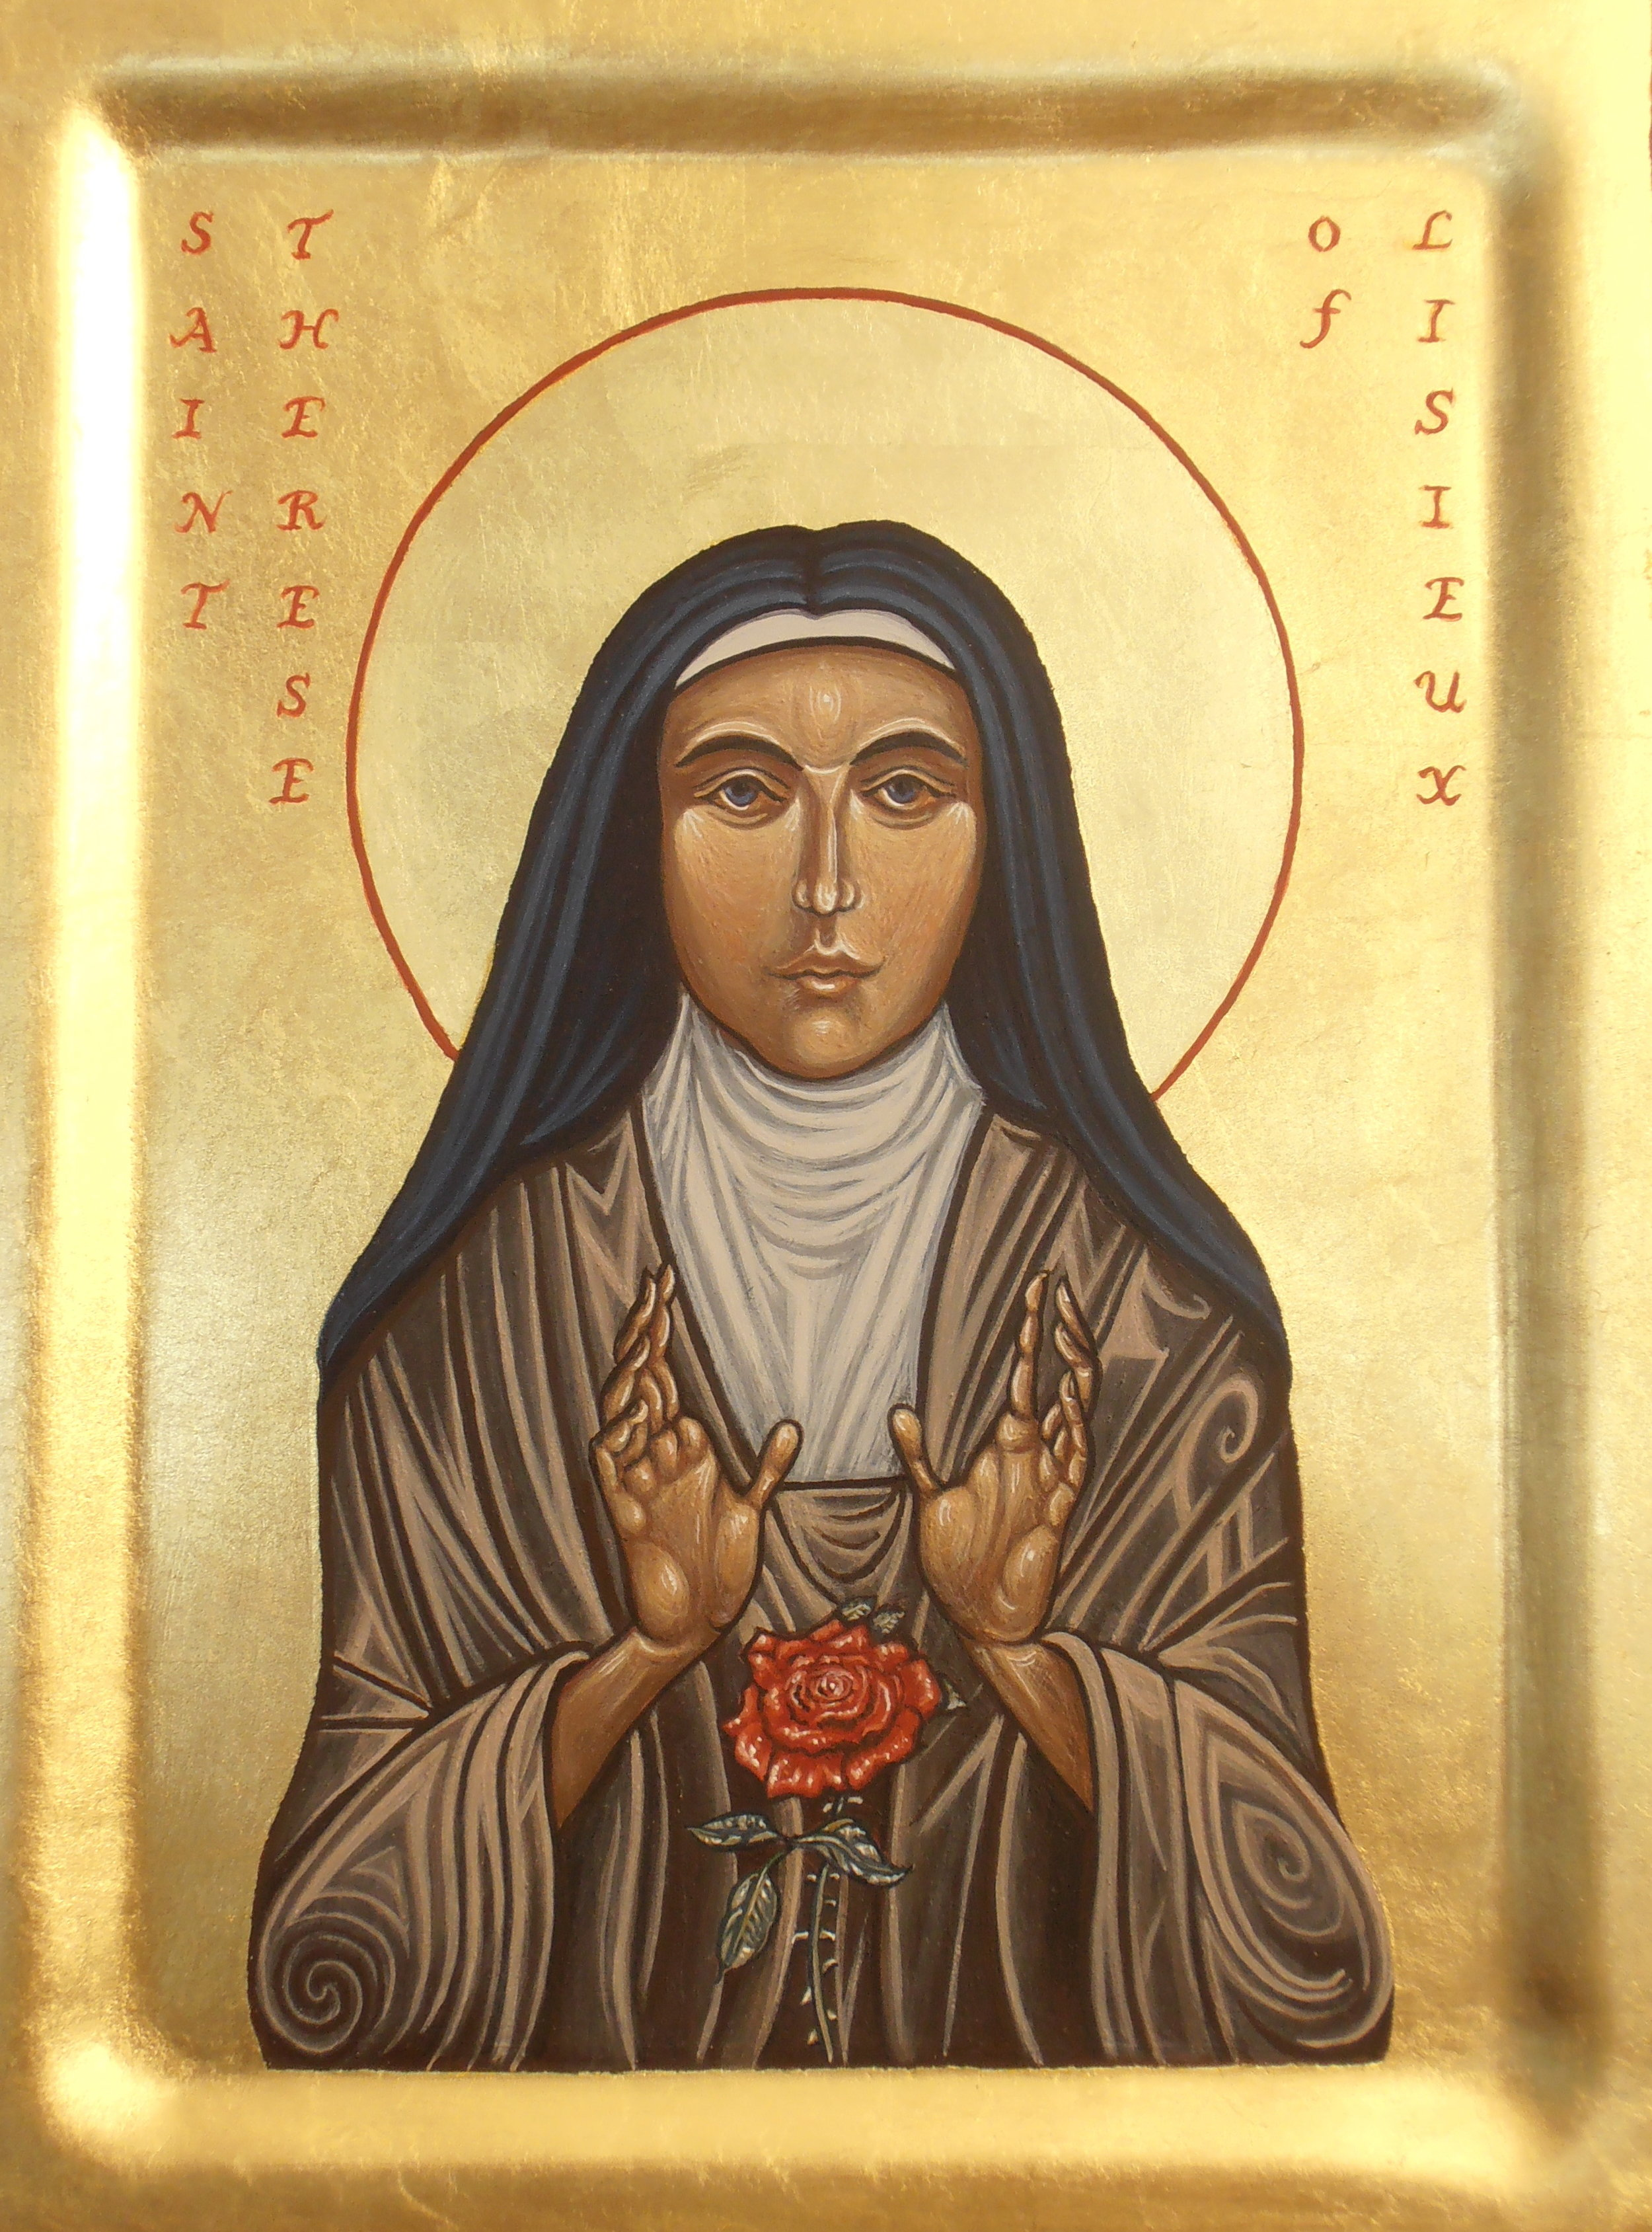 St. Therese of Lisieux. Tempera and gold leaf on gesso panel. 21.6 cm x 27.9 cm. 2014